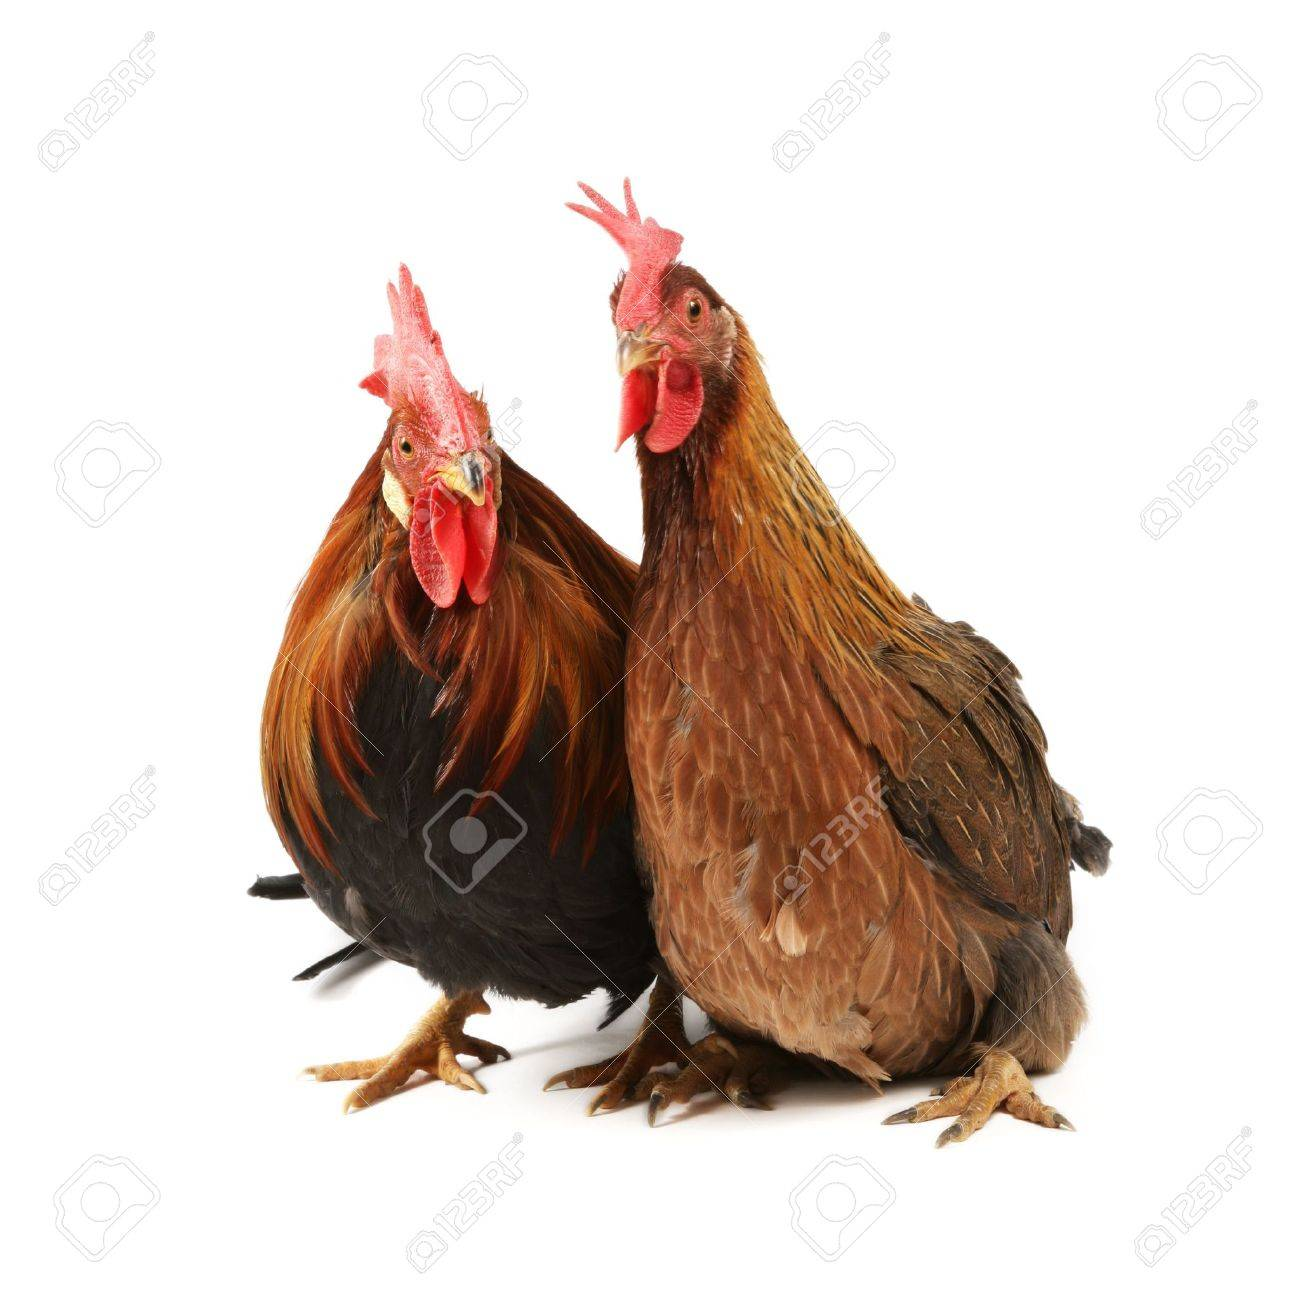 italian red rooster and hen isolated on a white background stock